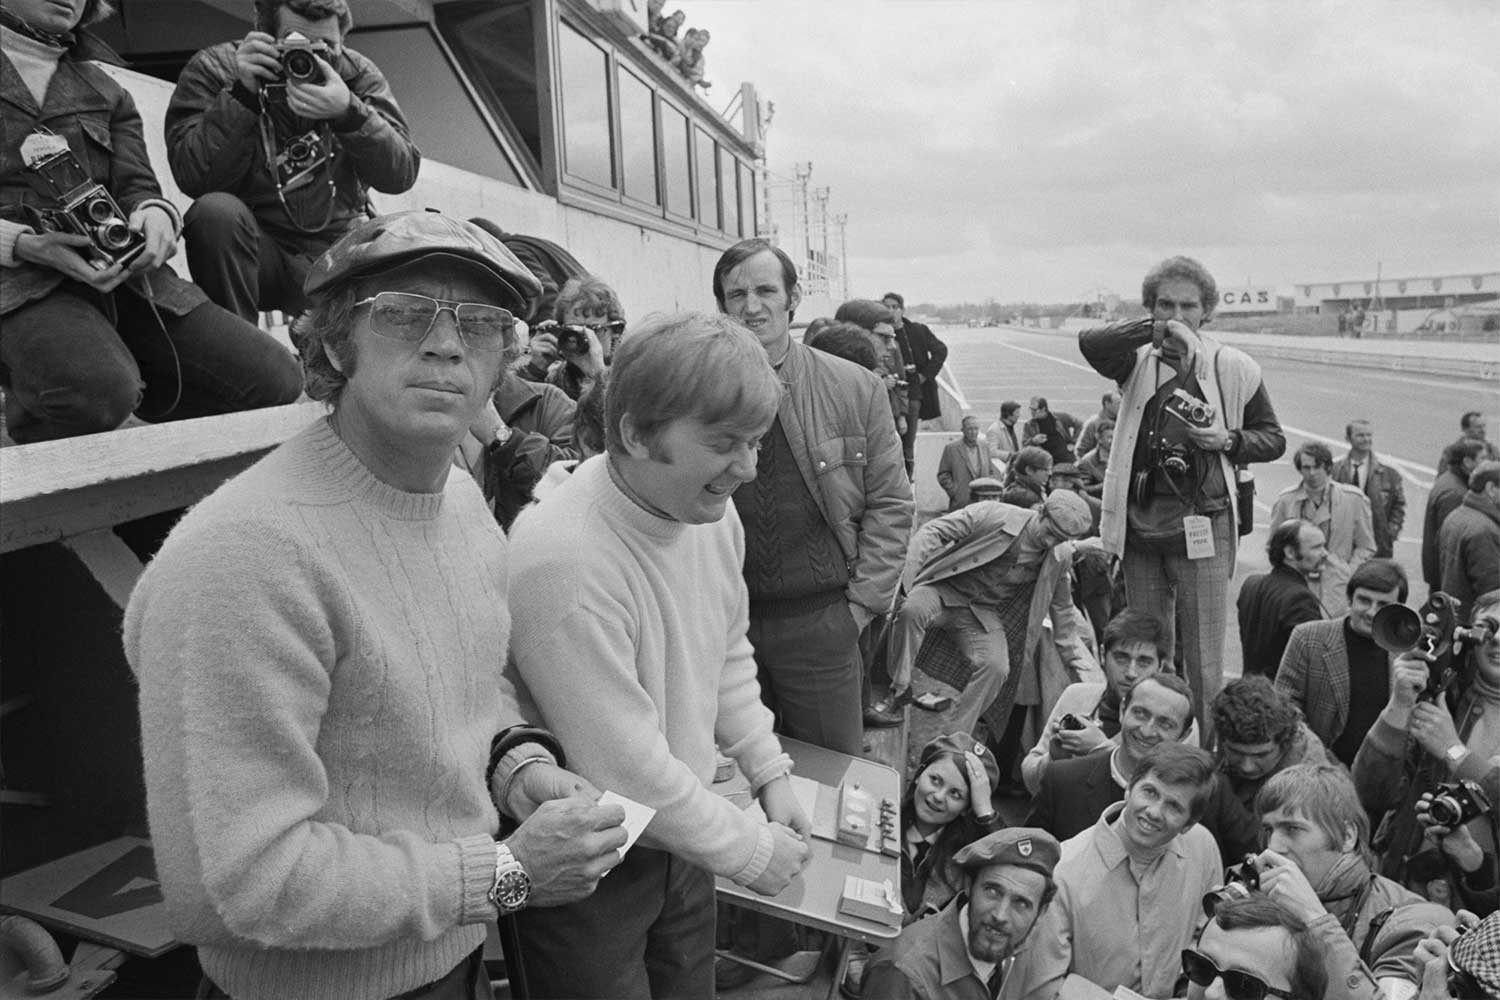 Steve McQueen at the Le Mans trials, France, 12th April 1970. He was banned from taking part in the race for insurance reasons. On his wrist, is of course the Rolex Submariner (Photo by Reg Lancaster/Daily Express/Getty Images)